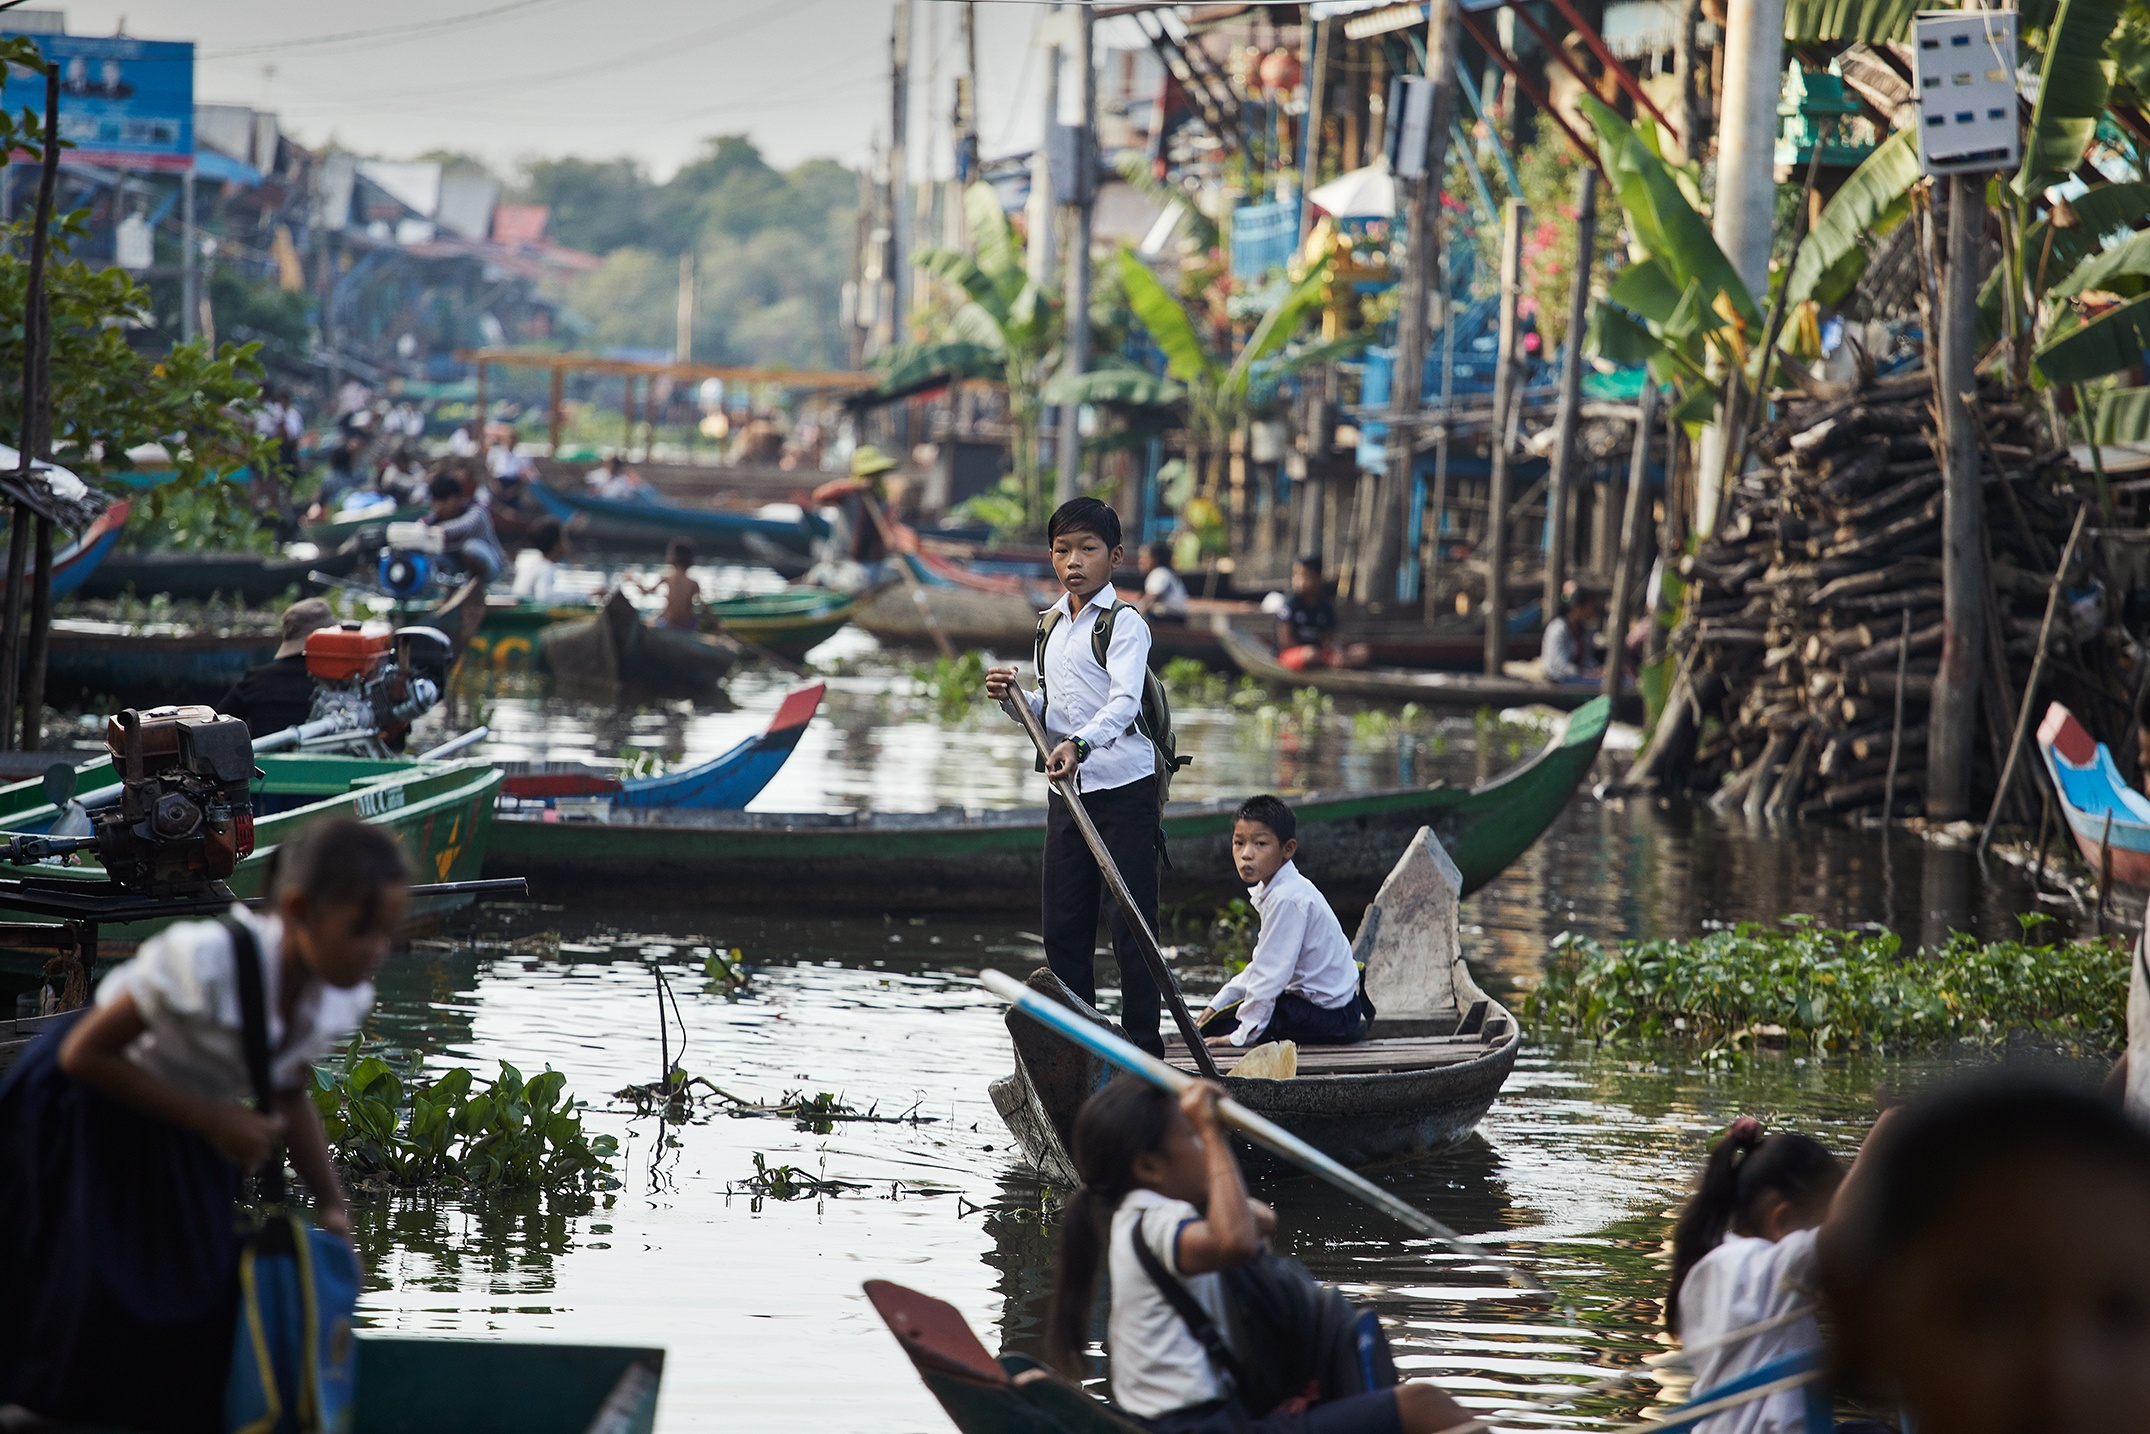 Cambodia - Kids rowing to School